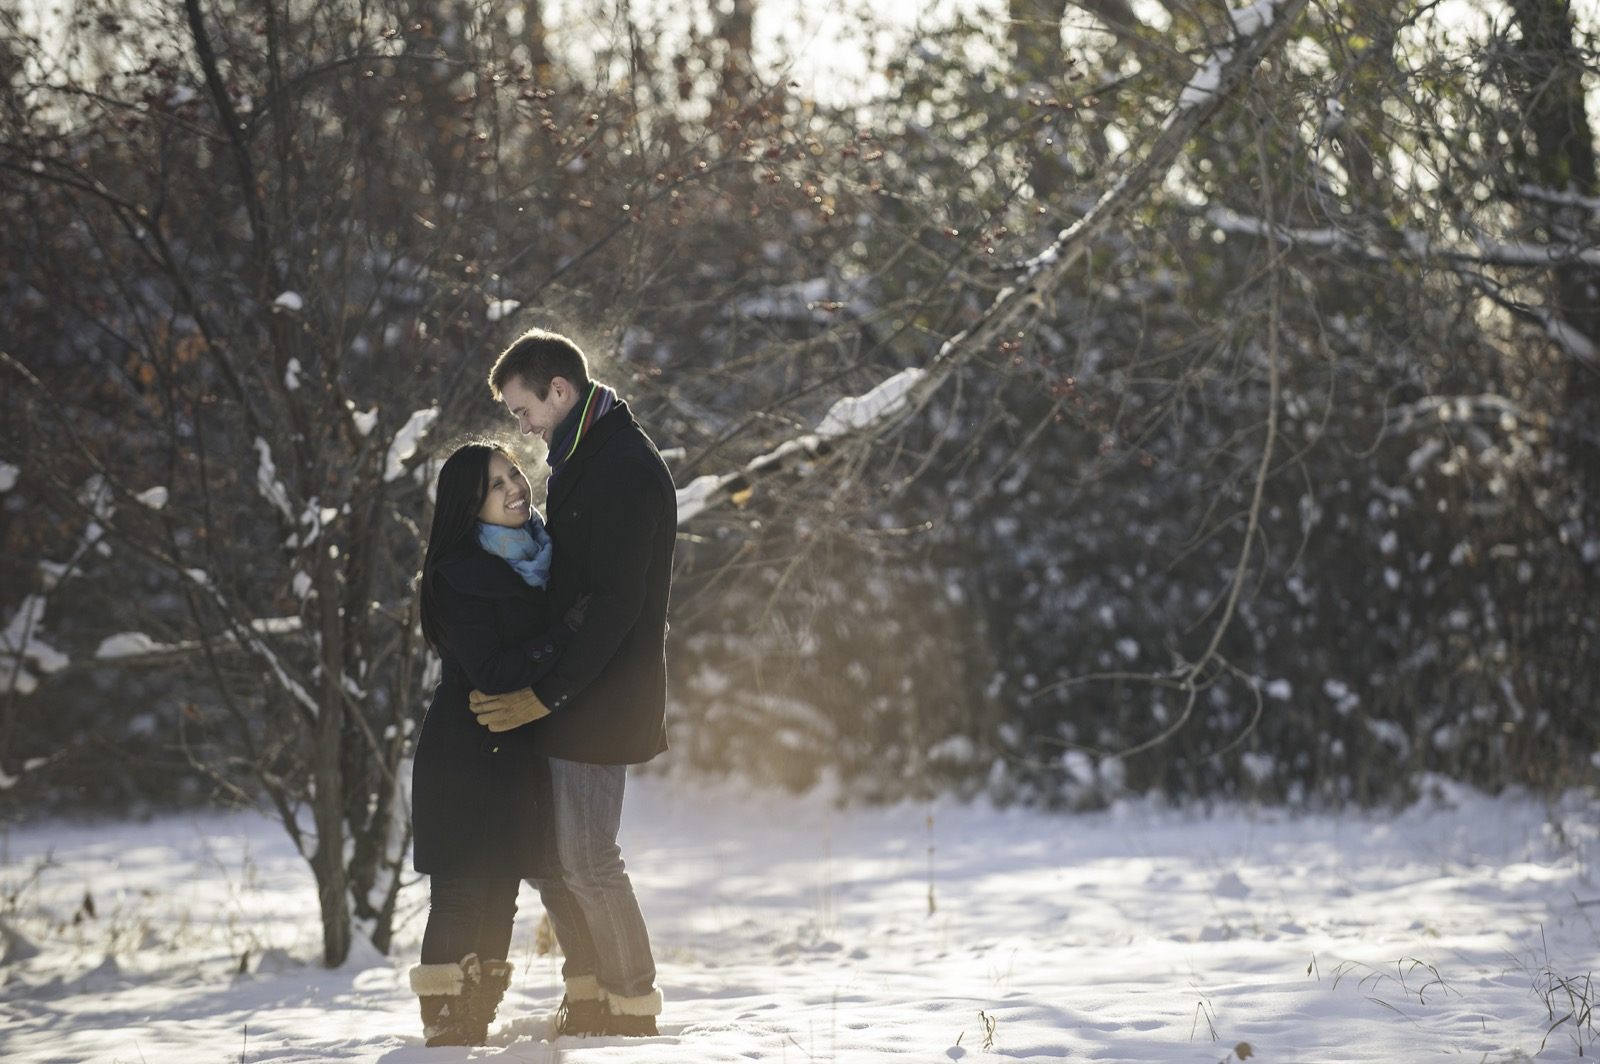 victoria-wedding-photographers-calgary-winter-engagement-proposal-31.jpg